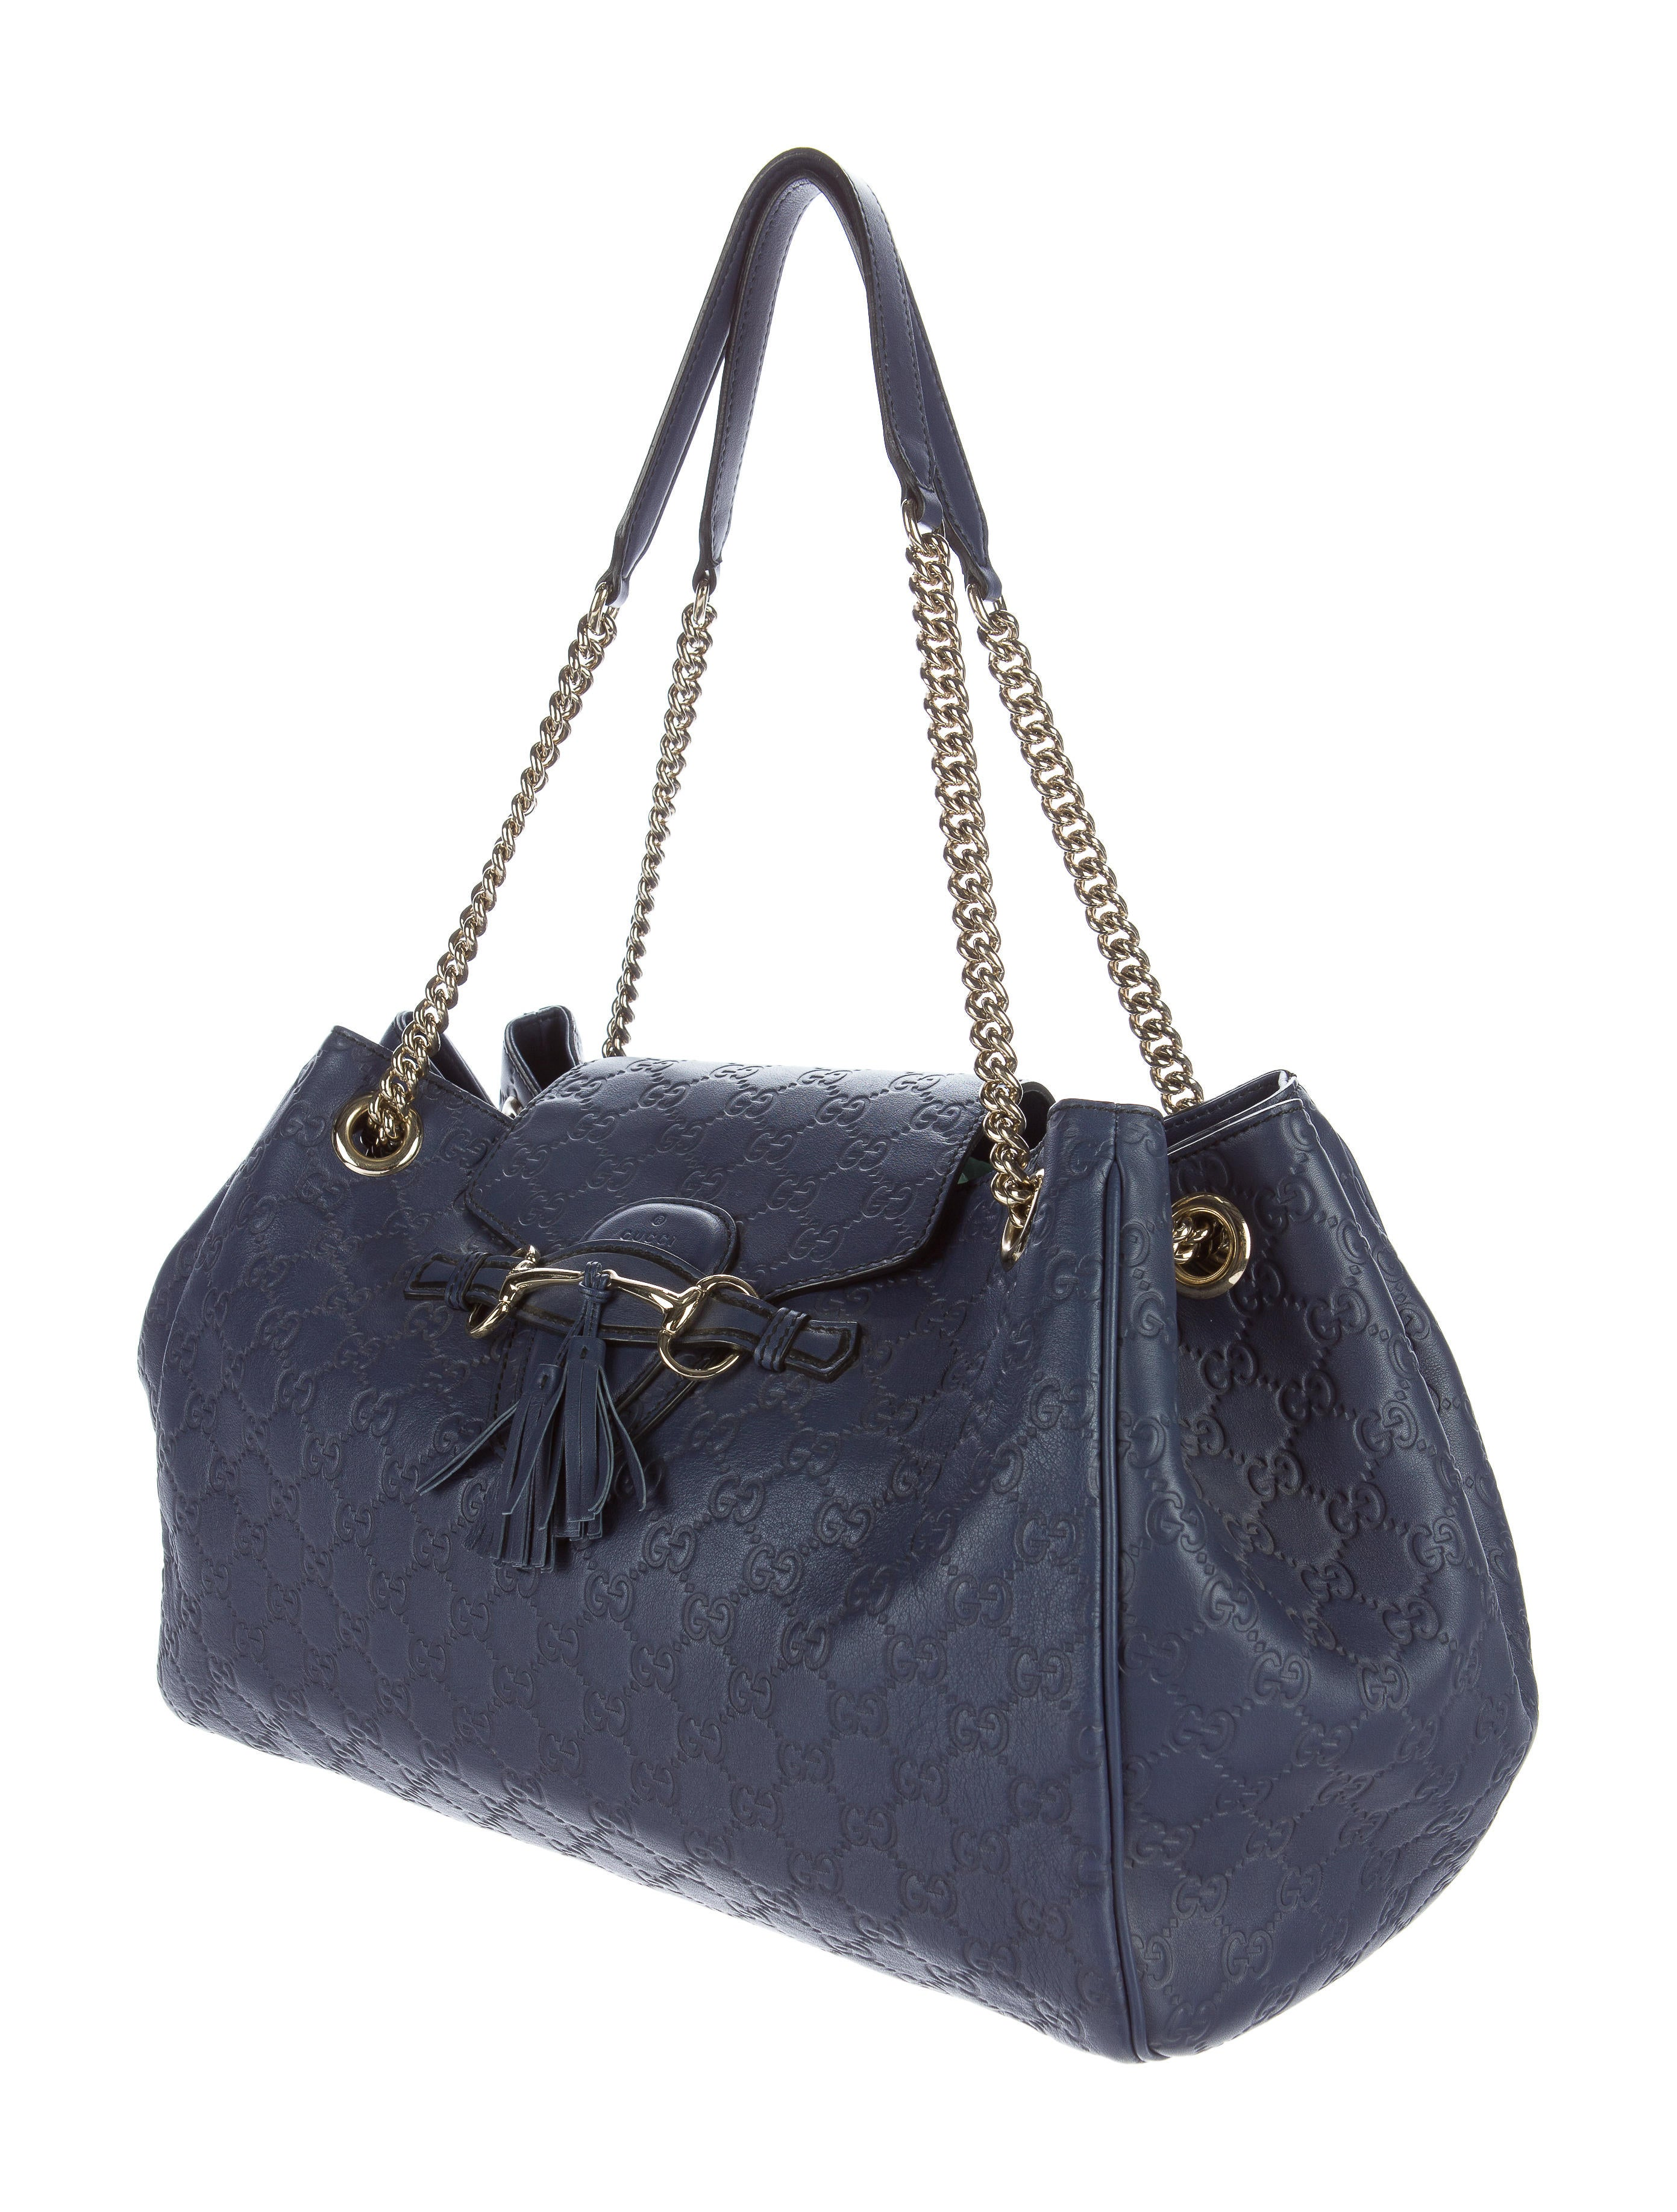 03d525167f4901 Gucci Guccissima Bag Uk | Stanford Center for Opportunity Policy in ...